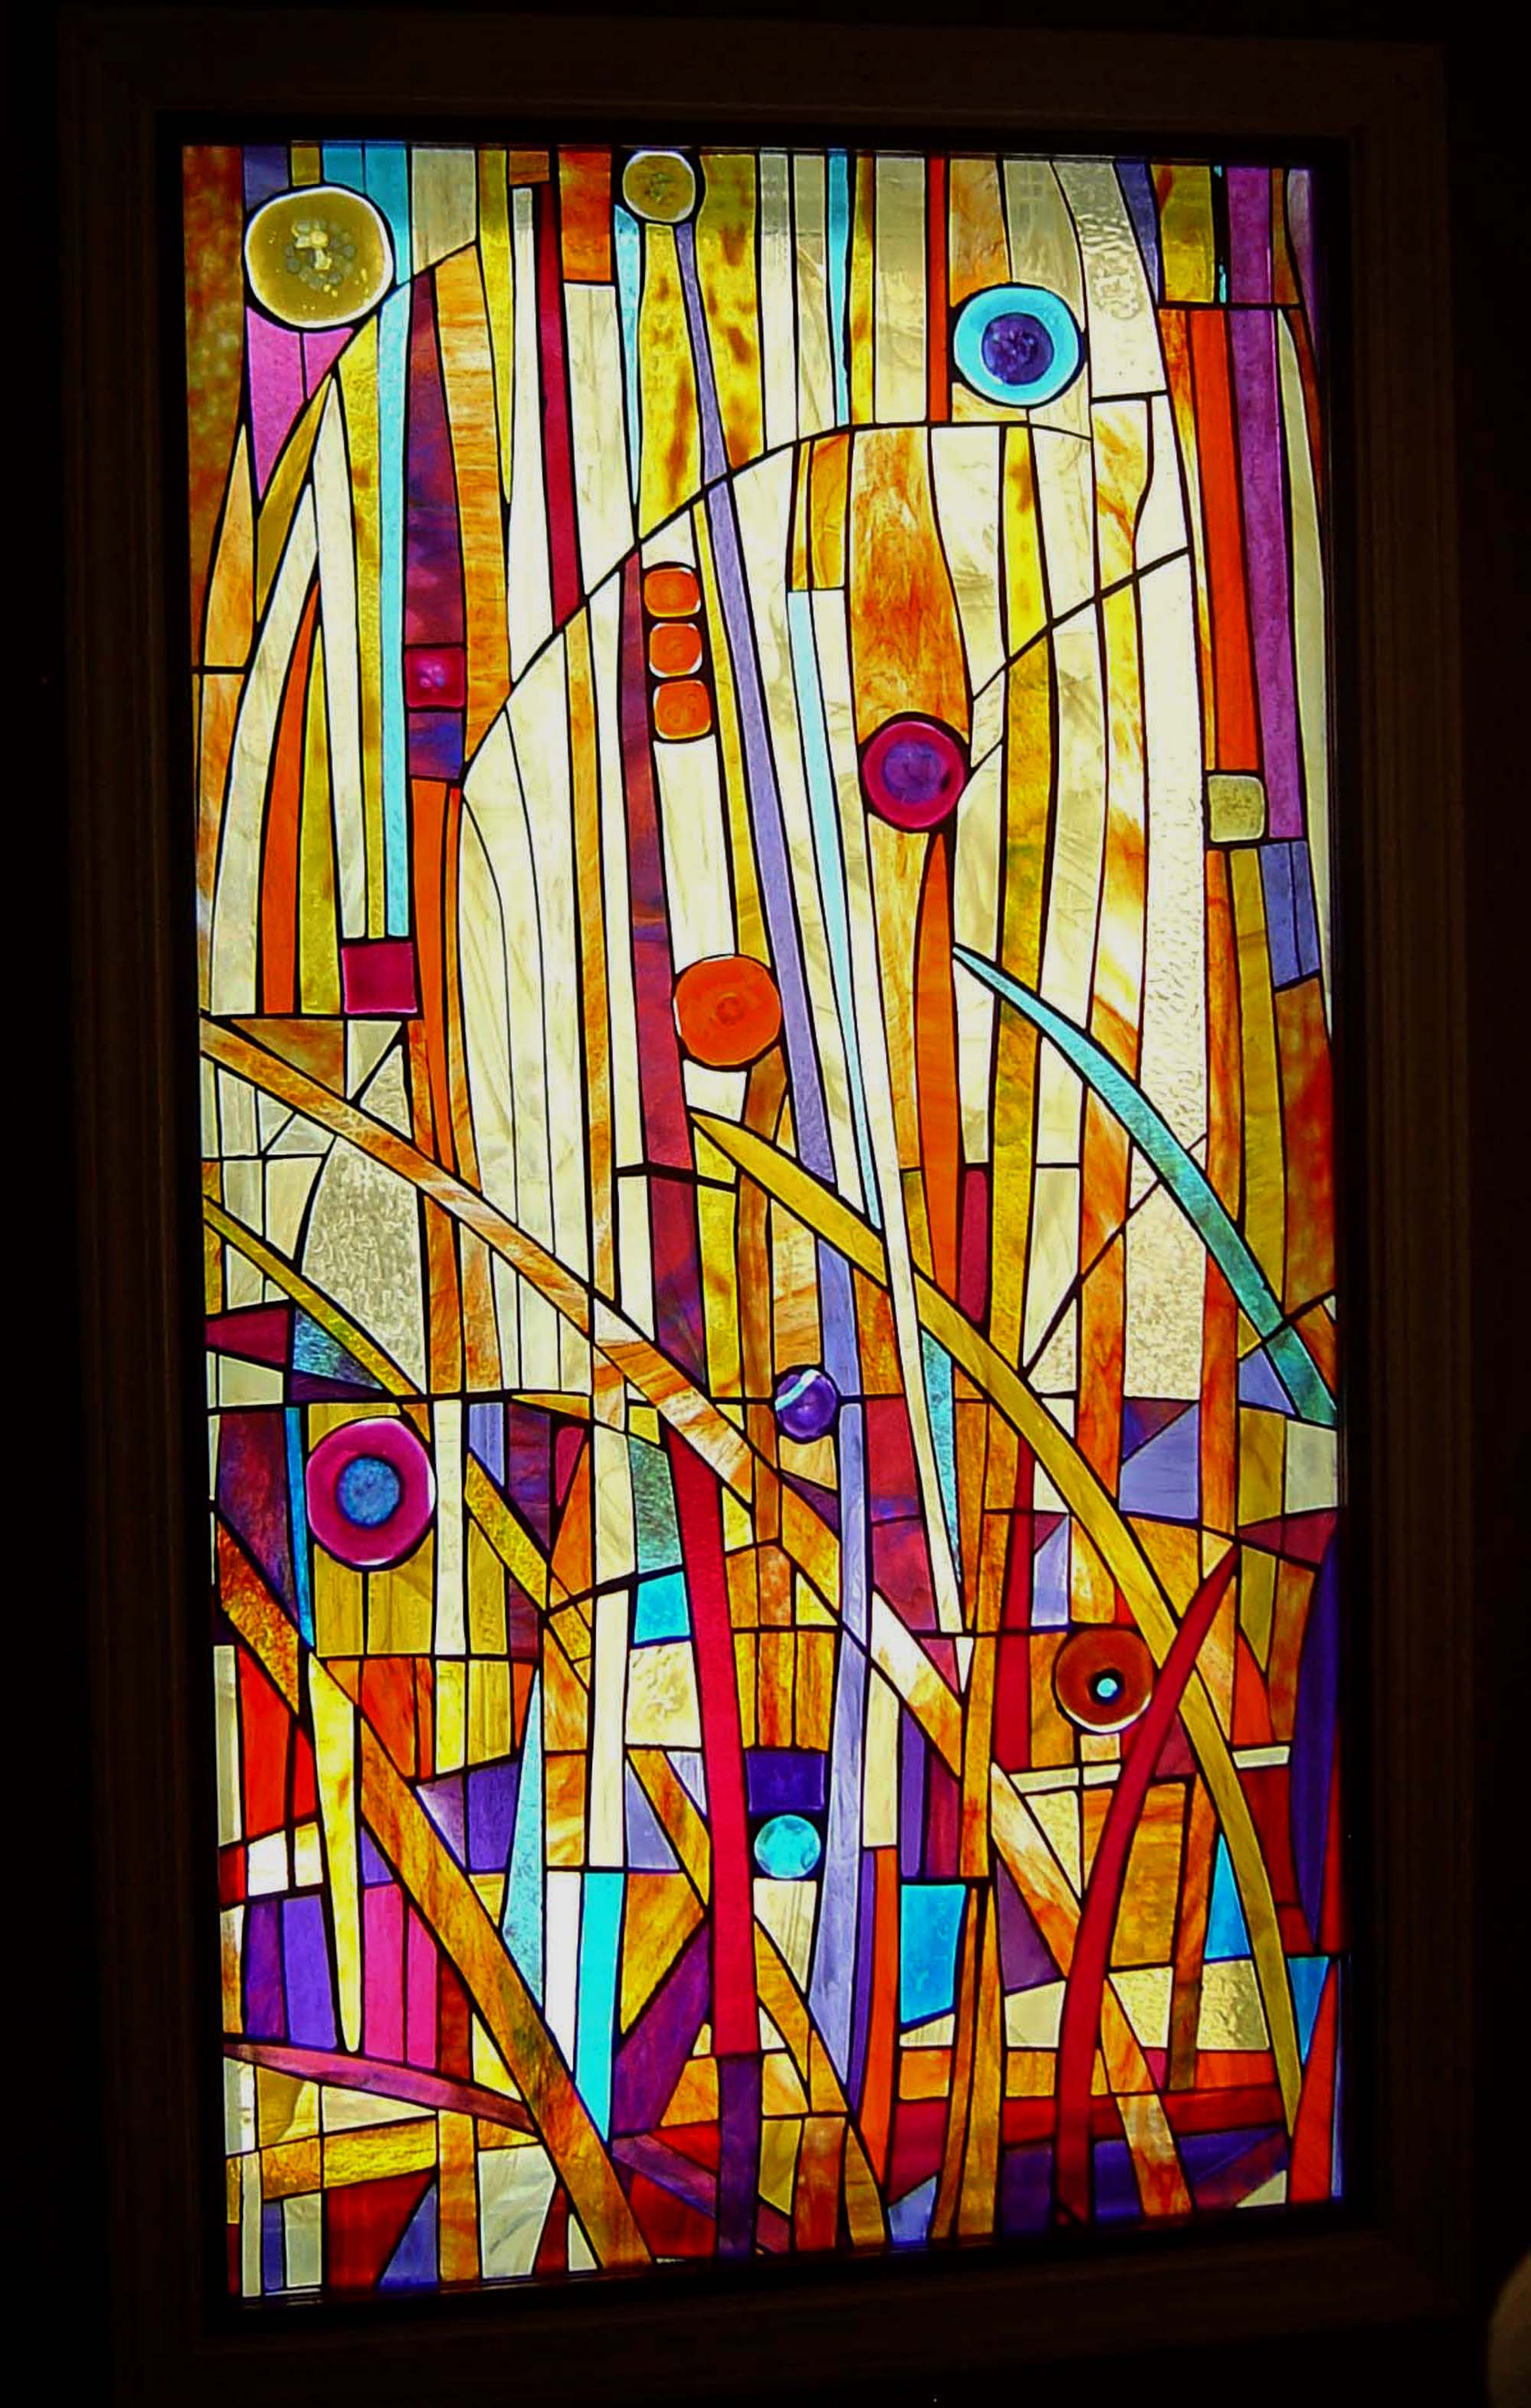 An interior designer showed me a picture and asked if I could make a window like this.